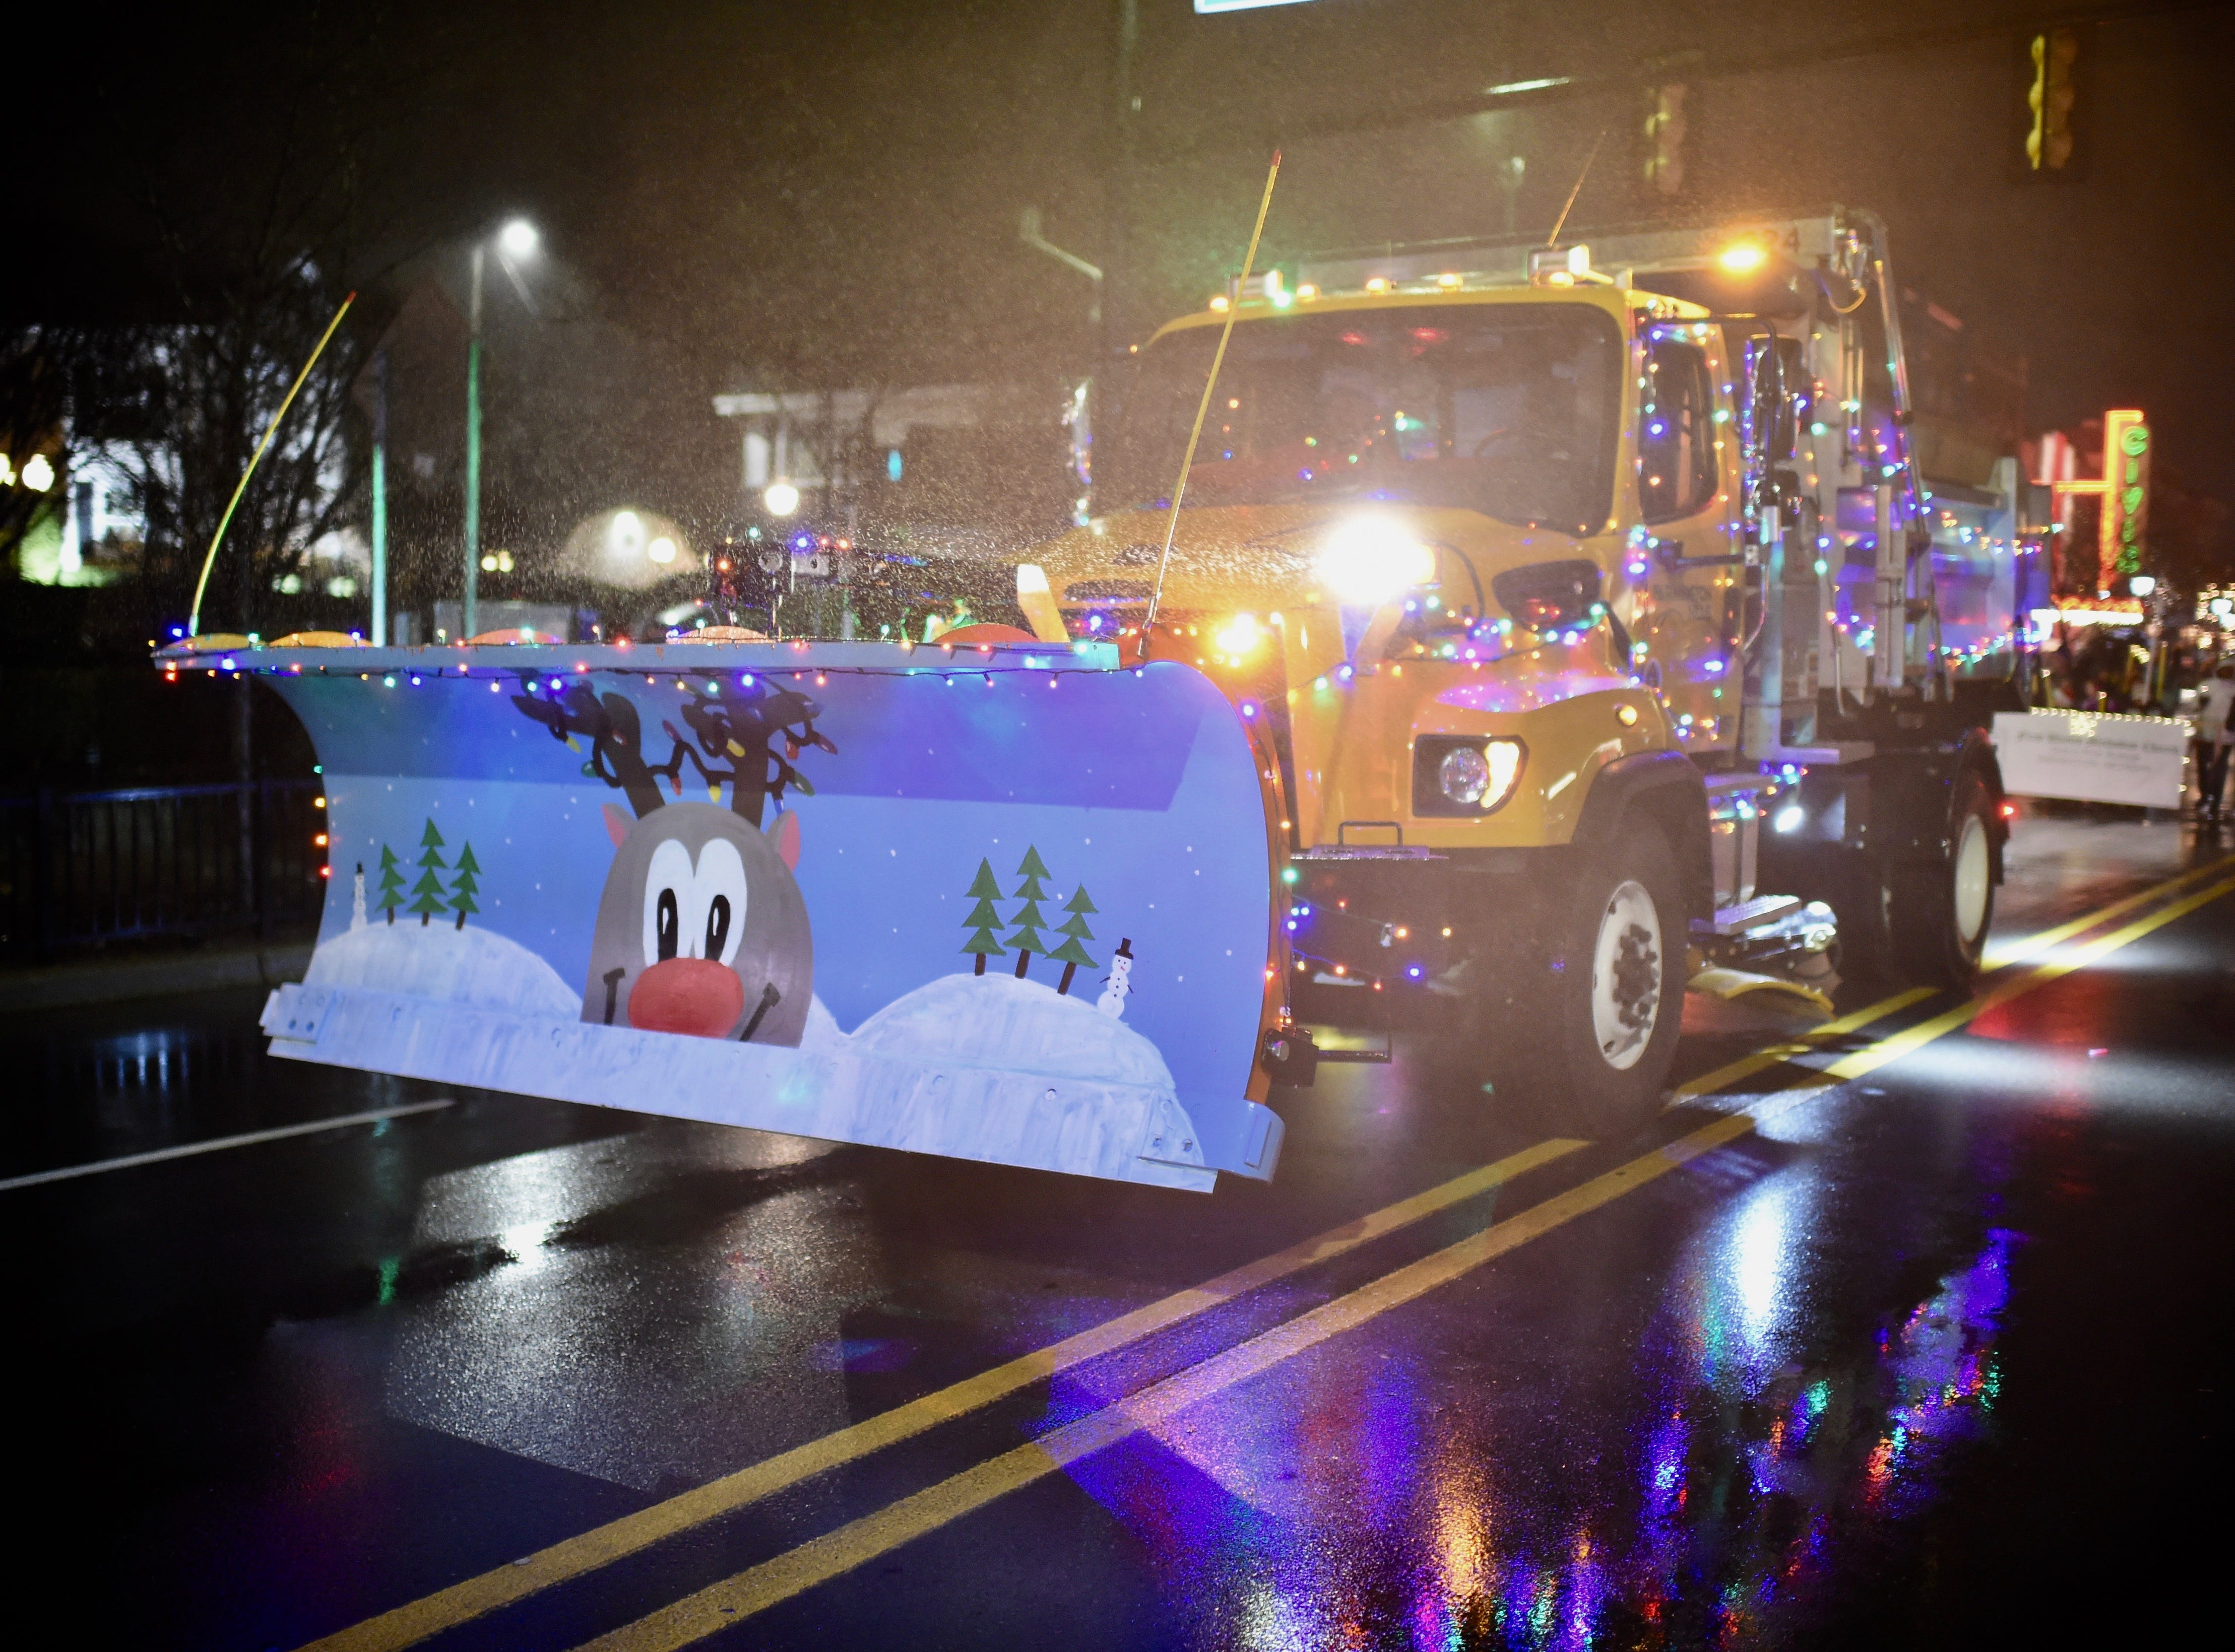 Even the city snow plow got into the holiday spirit.